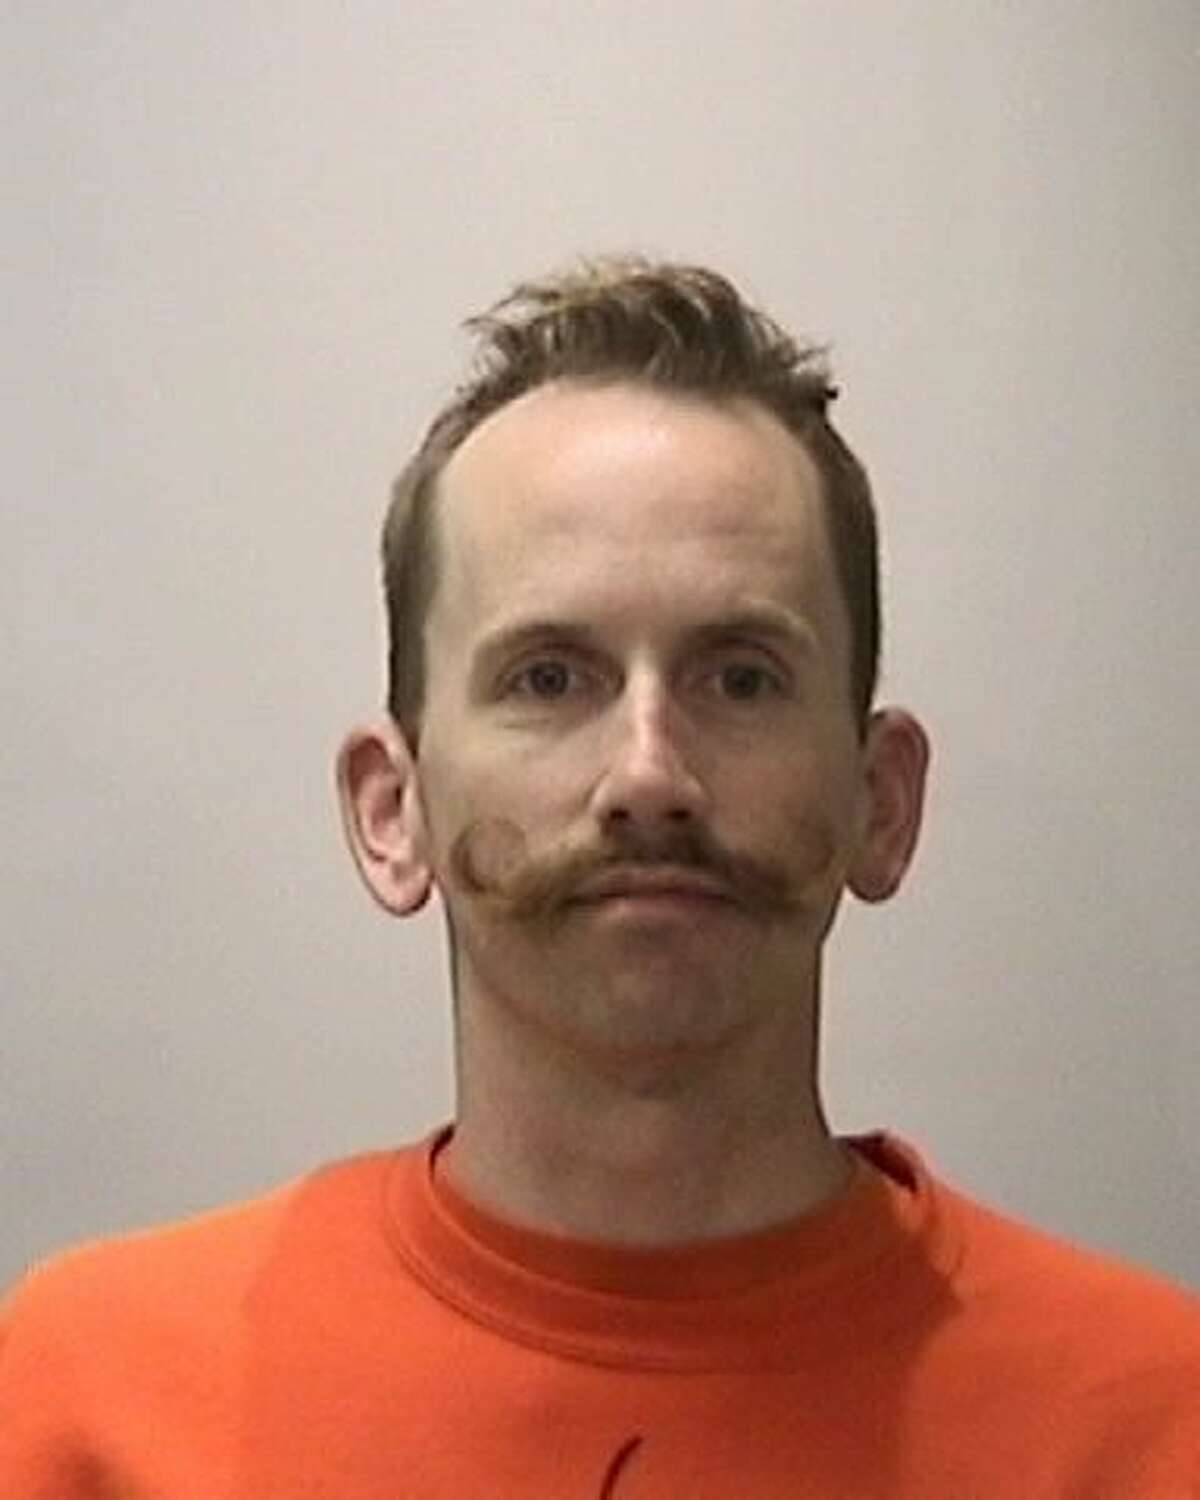 Ian Hespelt, 39, was arrested on suspicion of four felony charges, including assault with a deadly weapon, stemming from an Aug. 28 attack during a Critical Mass bike ride.